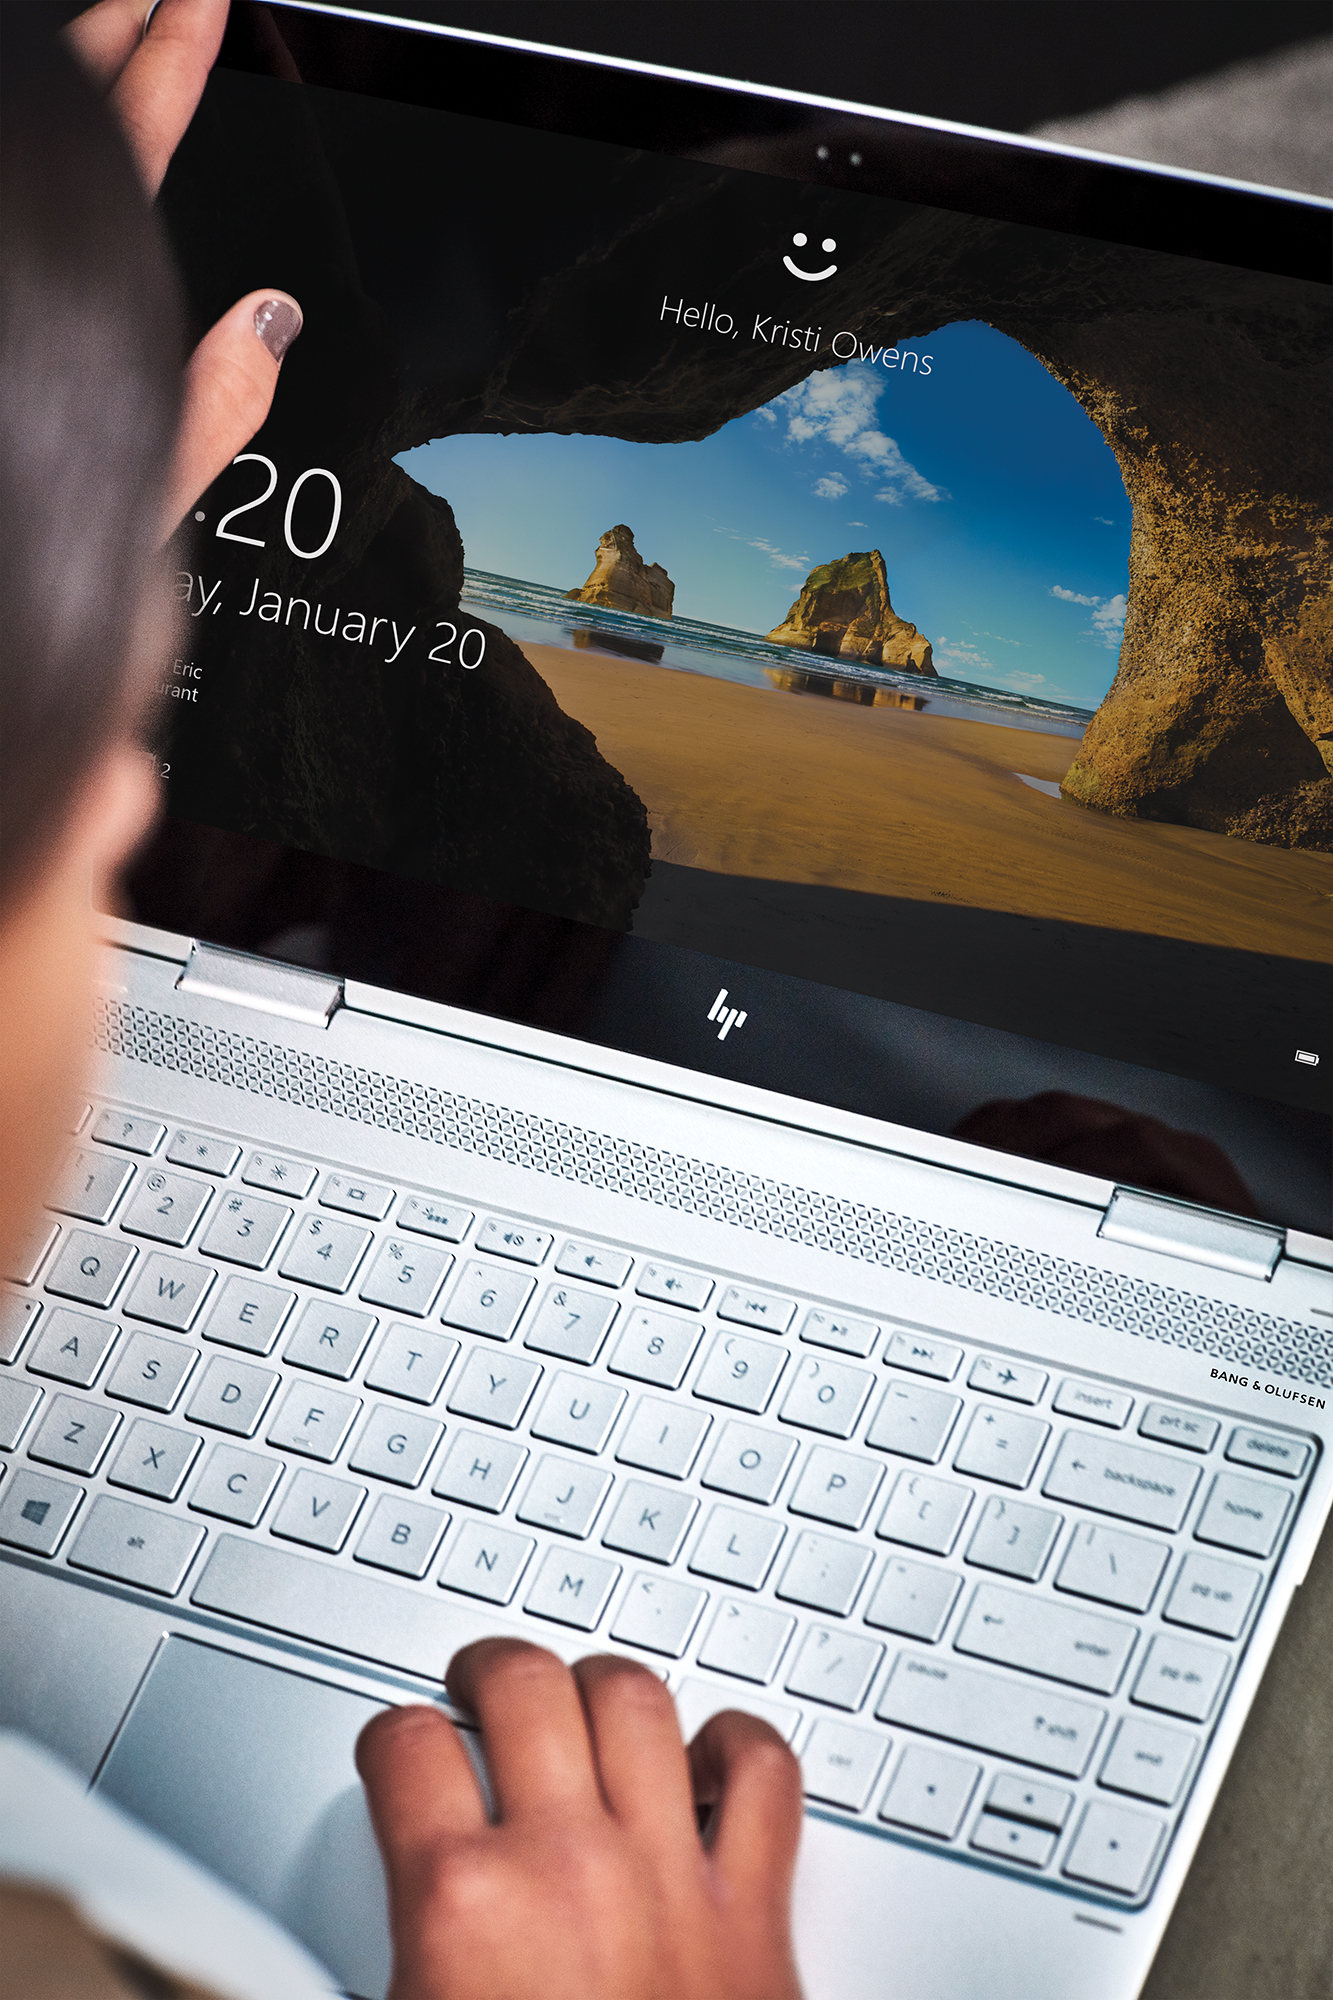 Windows Hello Launch - As the lead interaction designer on this project, it was my job to work with my partners to create a design plan. I collaborated with PM, Engineer, Research and Marketing. My deliverables were vision videos, user flows, and prototypes for user research. Click here to download the case study.